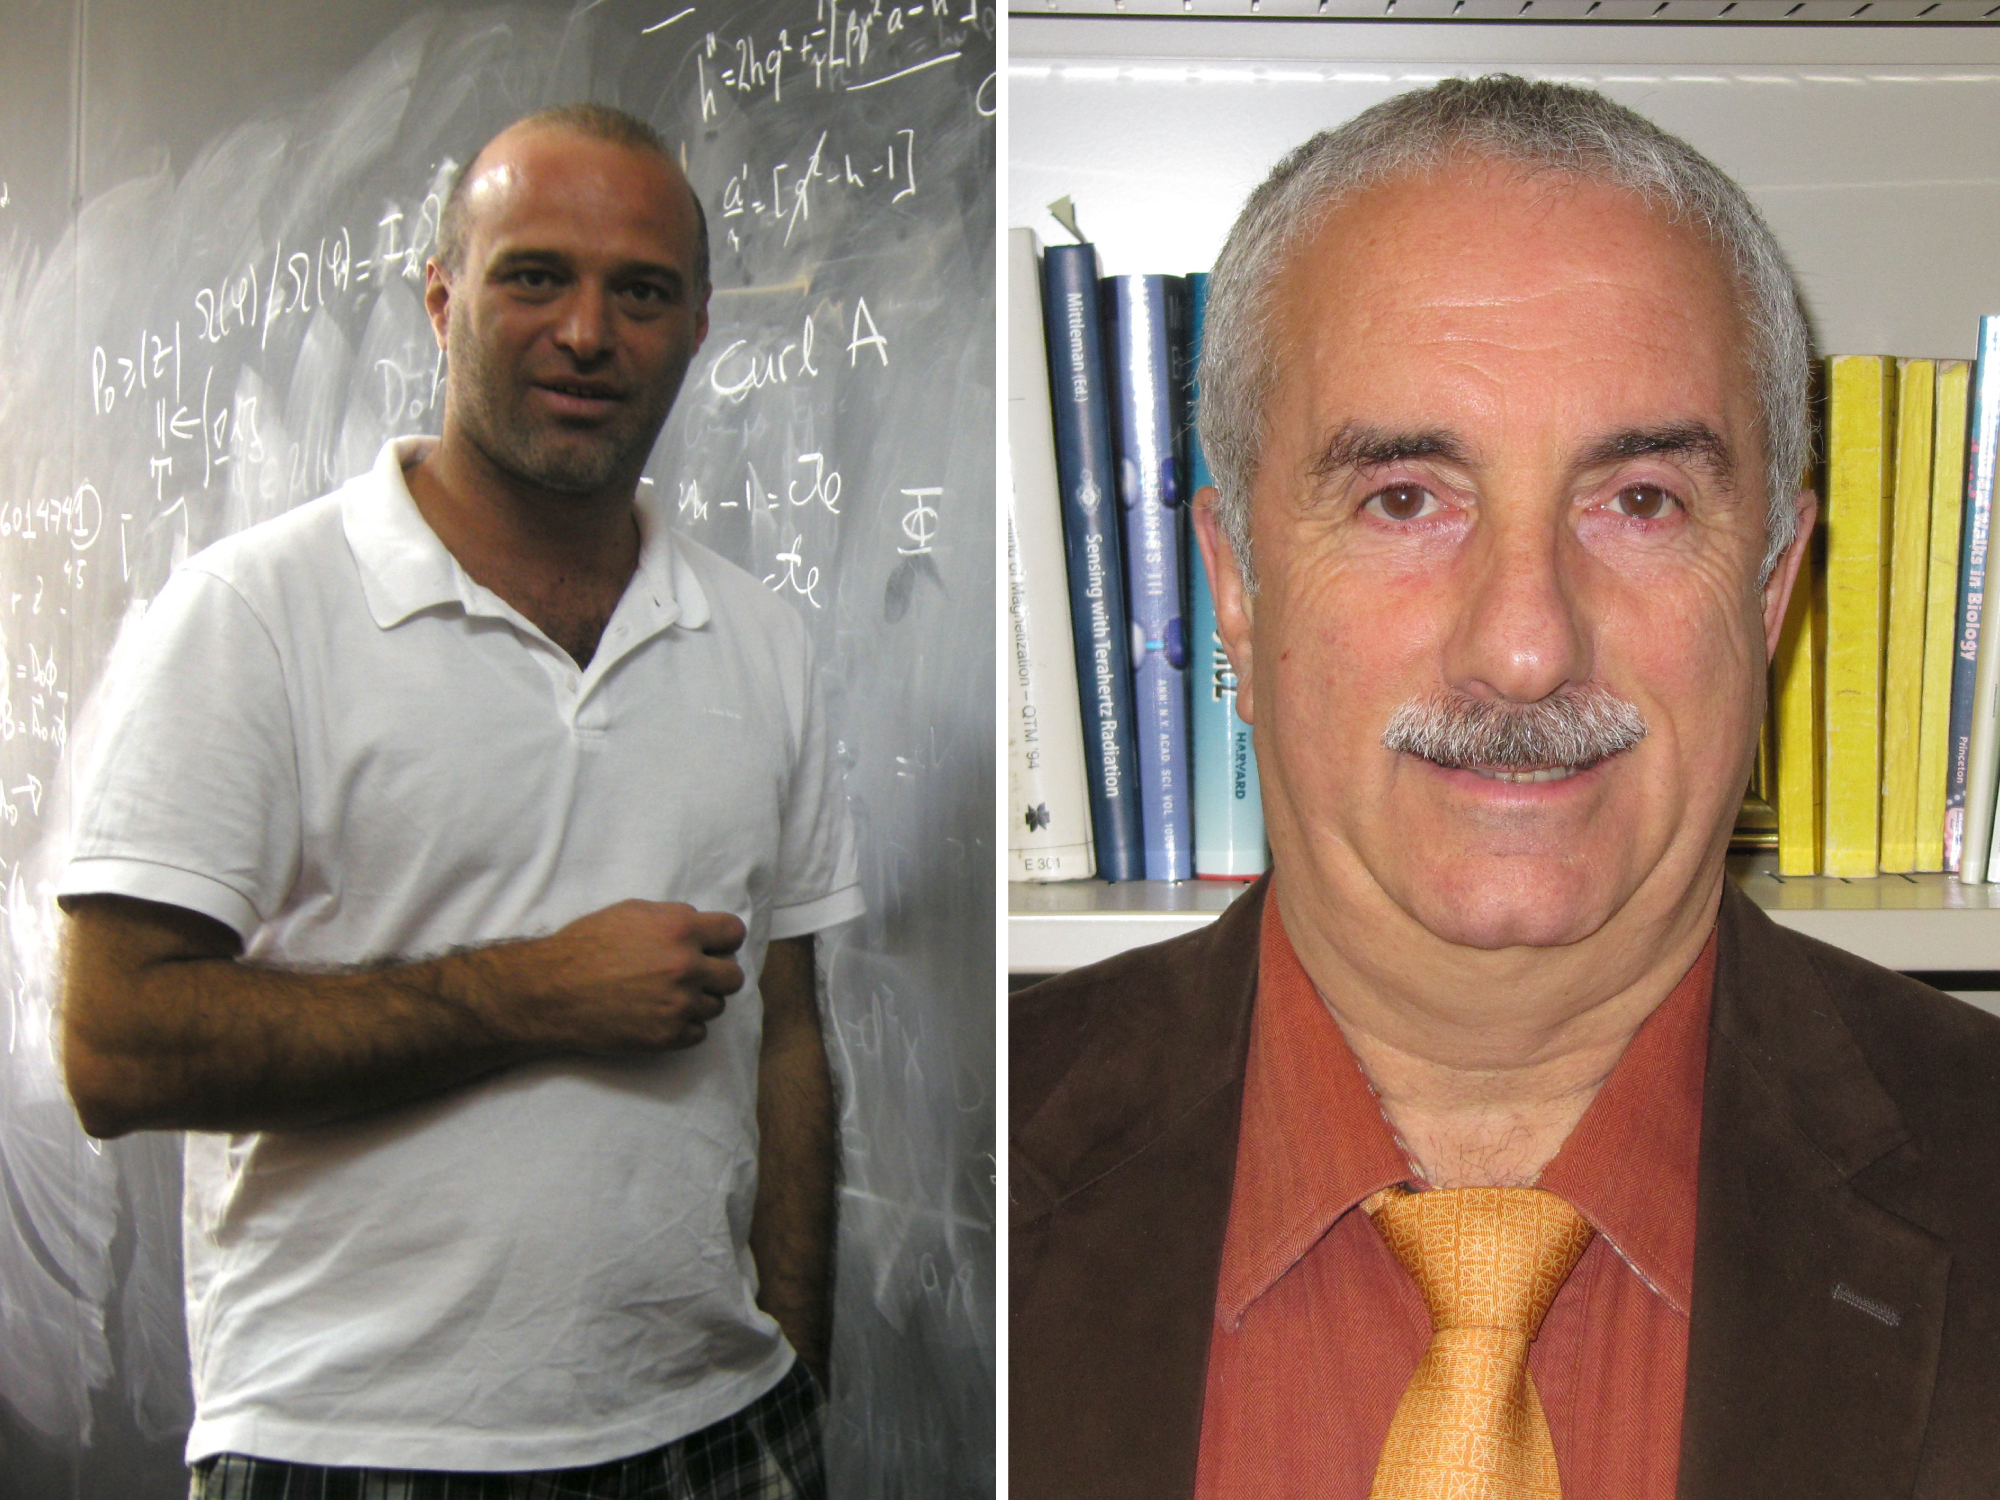 Luis Anchordoqui (left) and Eugene Chudnovsky (right)